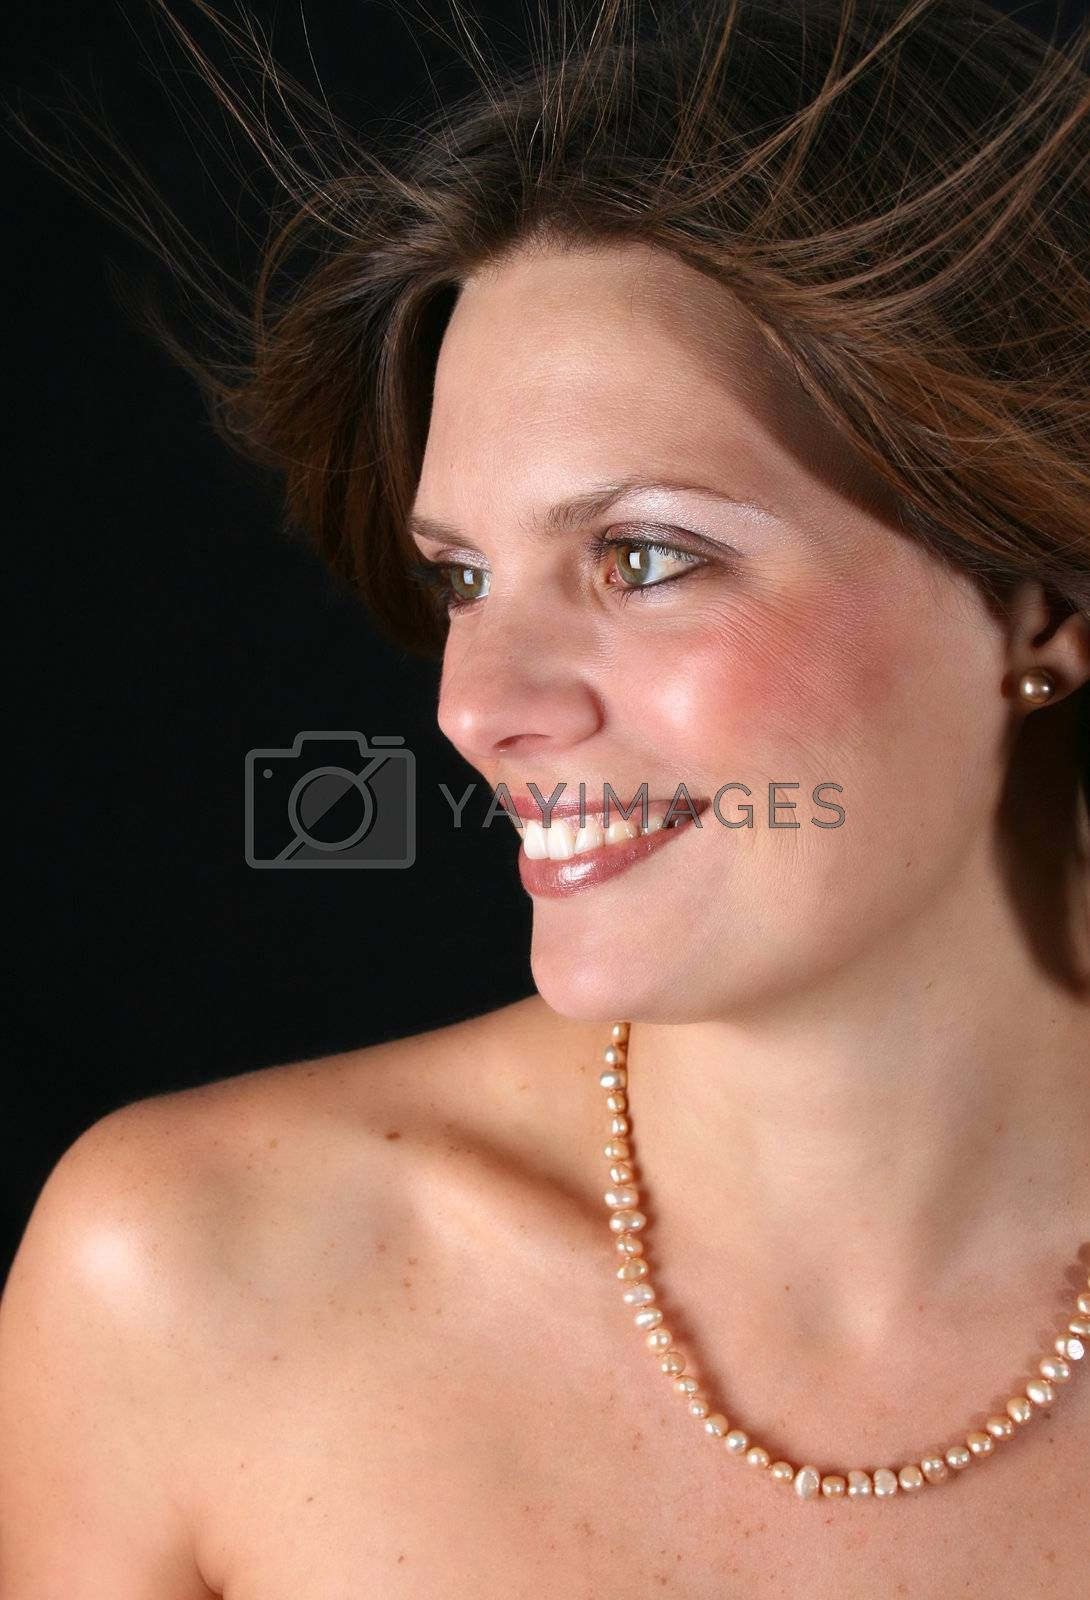 Beautiful young woman with naked shoulders and pearls